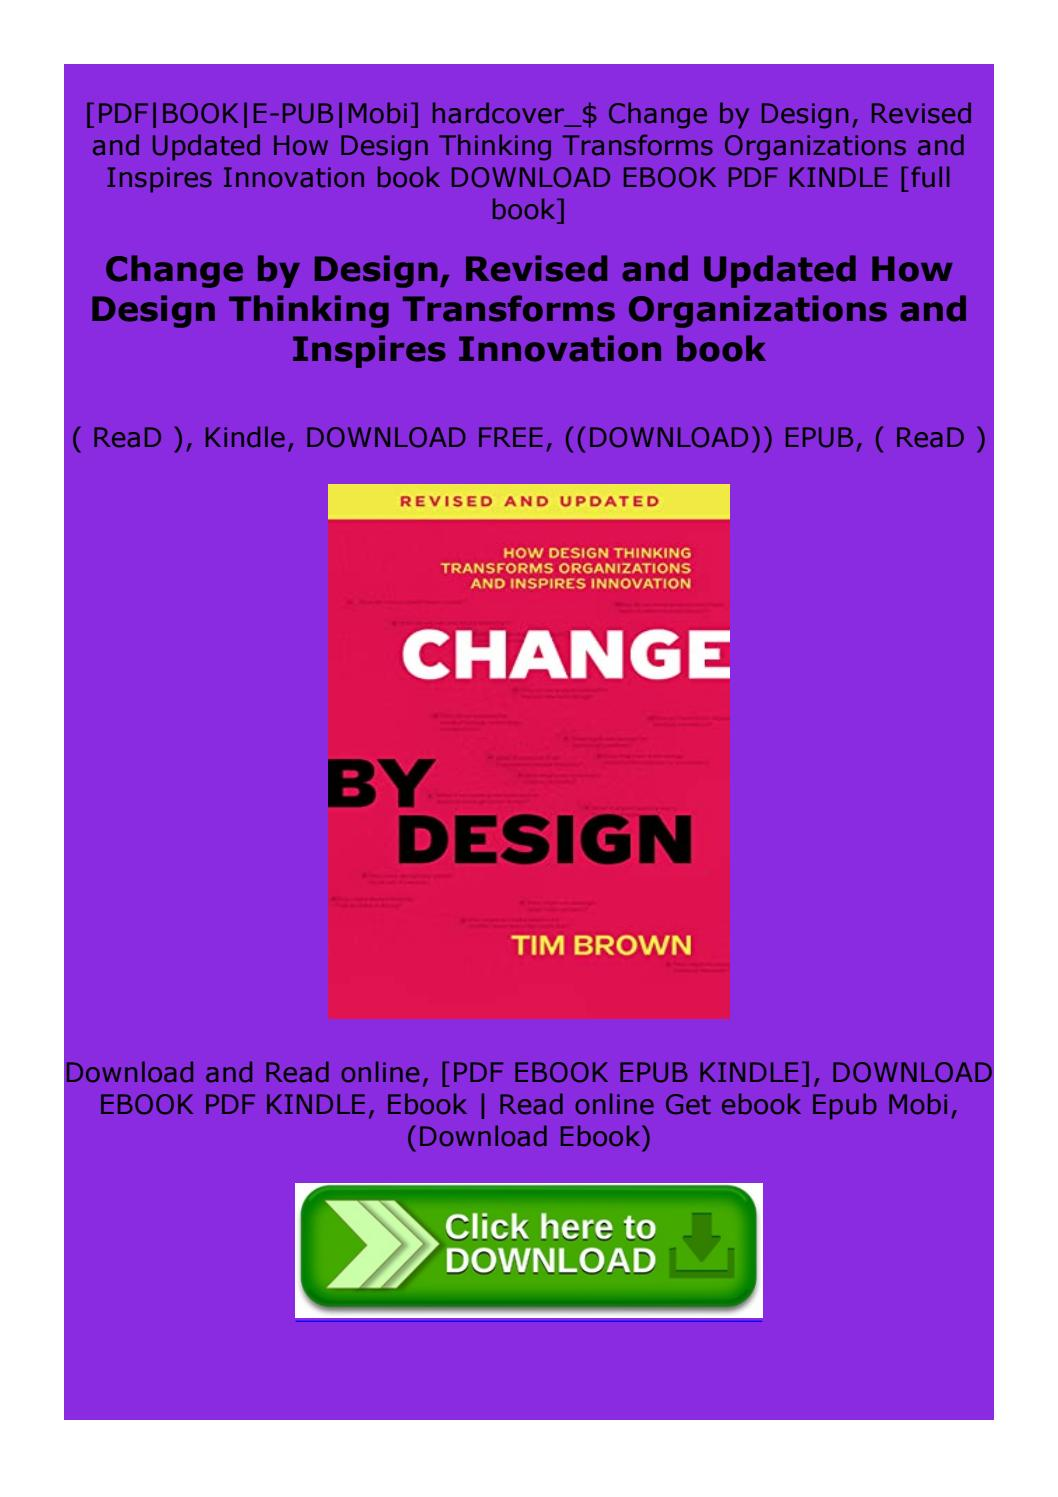 Change By Design Revised And Updated How Design Thinking Transforms Organizations And Inspires By Zxgdzdfdffzfv Issuu